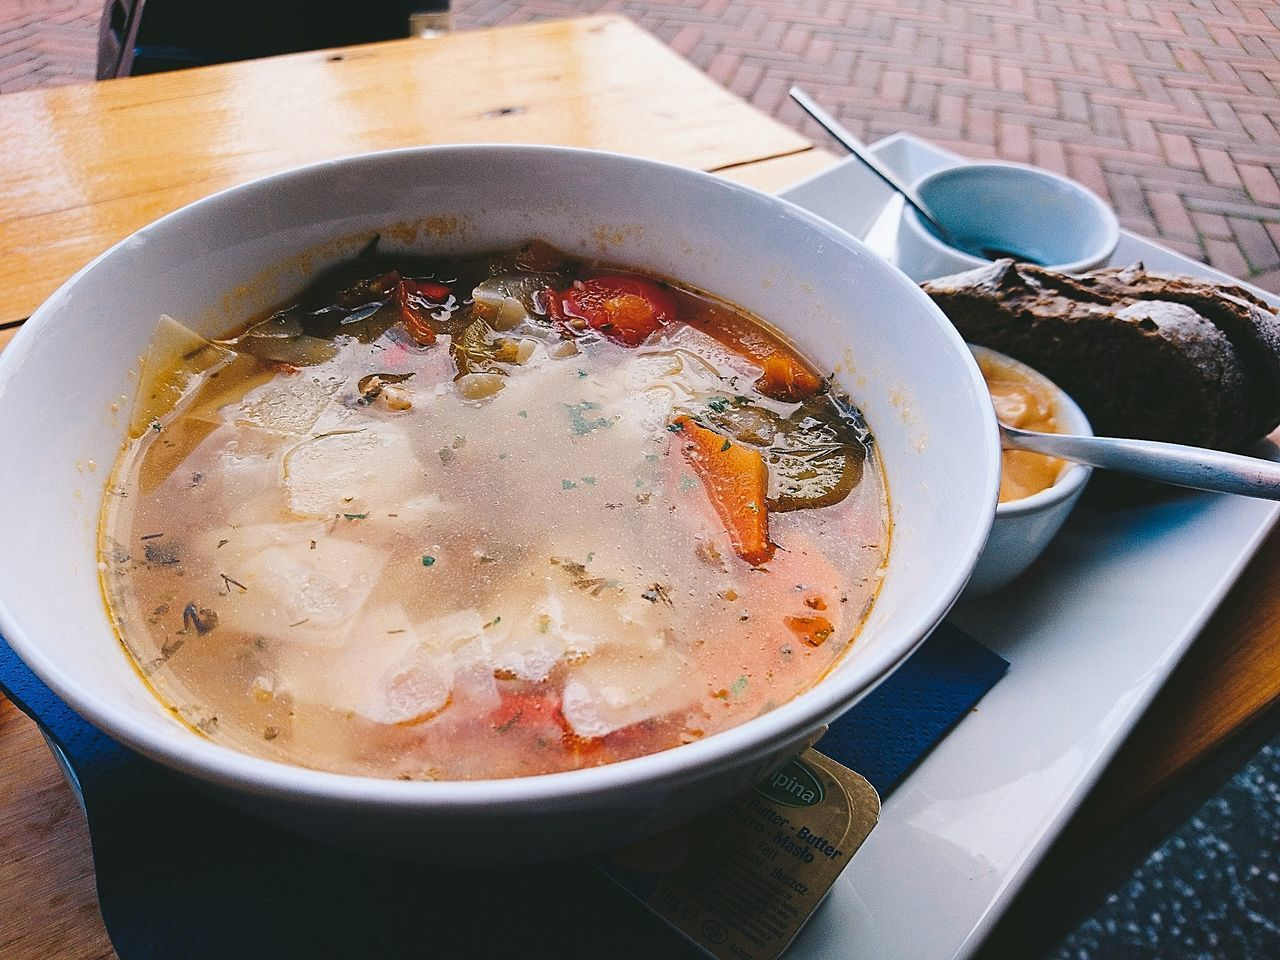 Hving A Soup Lunch Time! Fish Soup Bouillabaisse Boulabaise Foodspotting Food Photography Tasty Foods Seafood Lovers